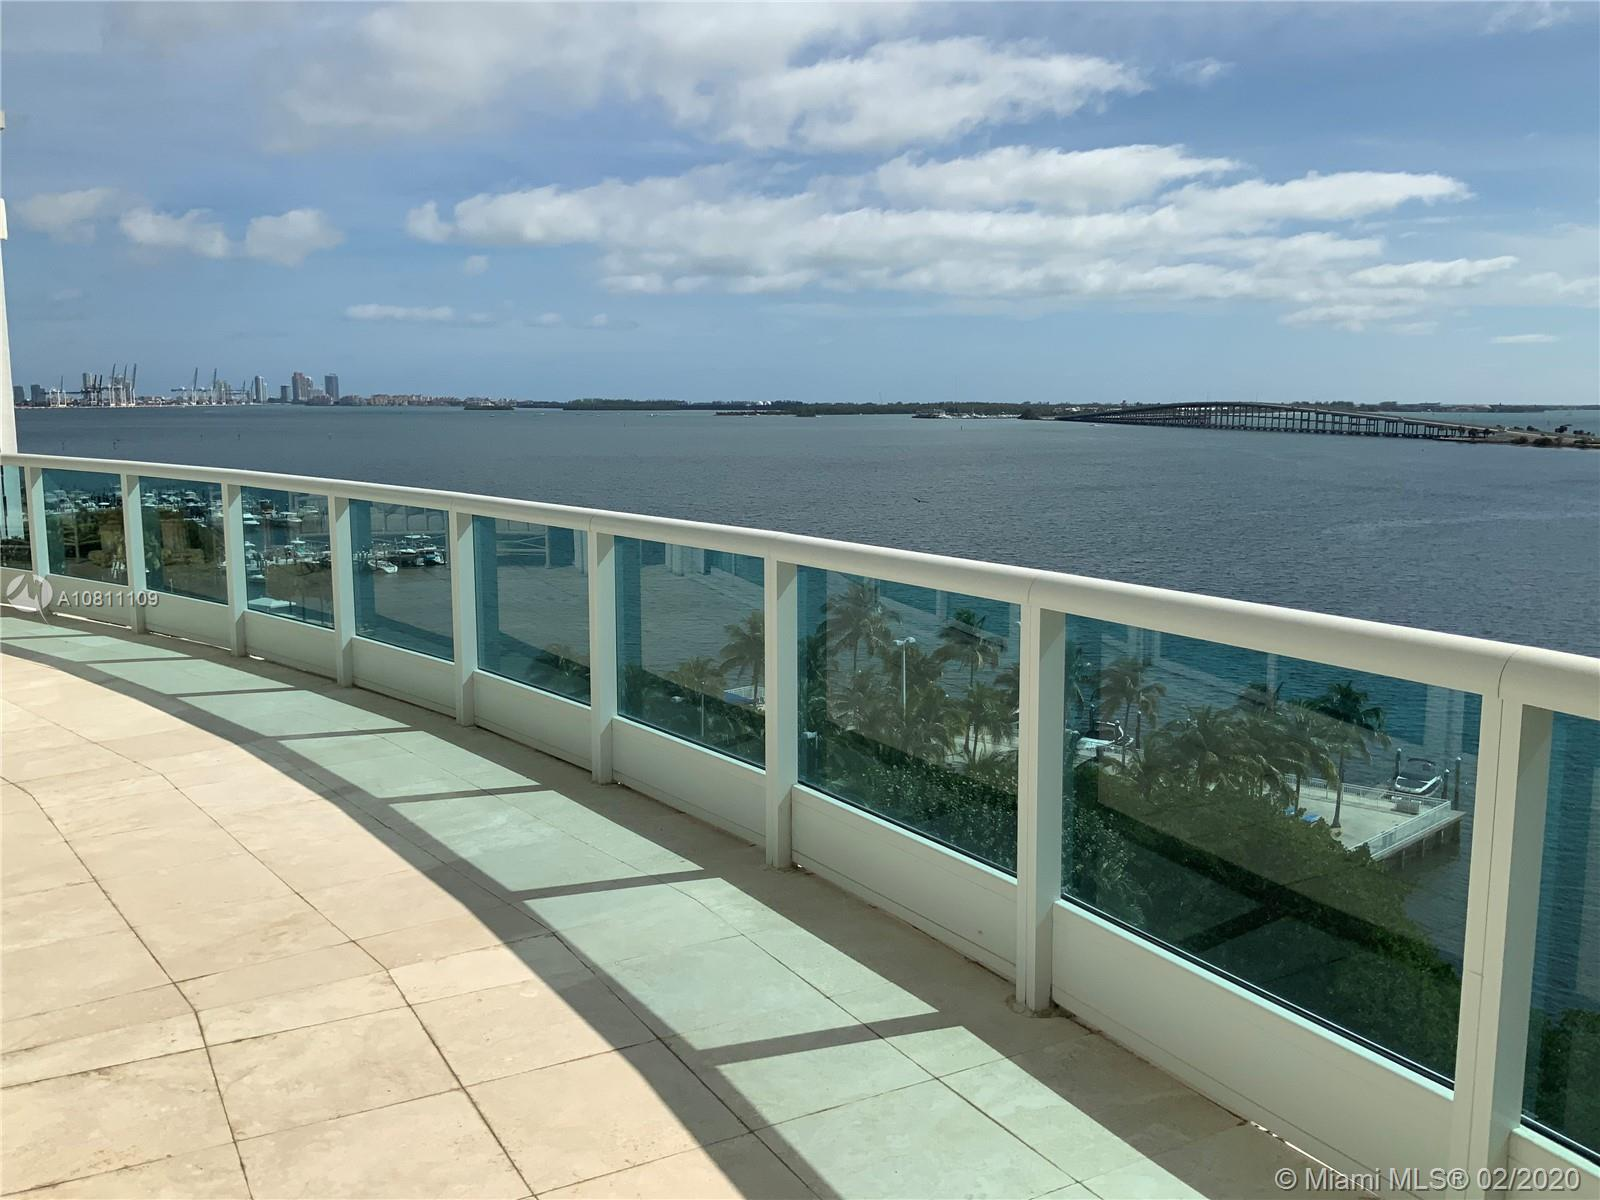 2127  Brickell Ave #1103 For Sale A10811109, FL